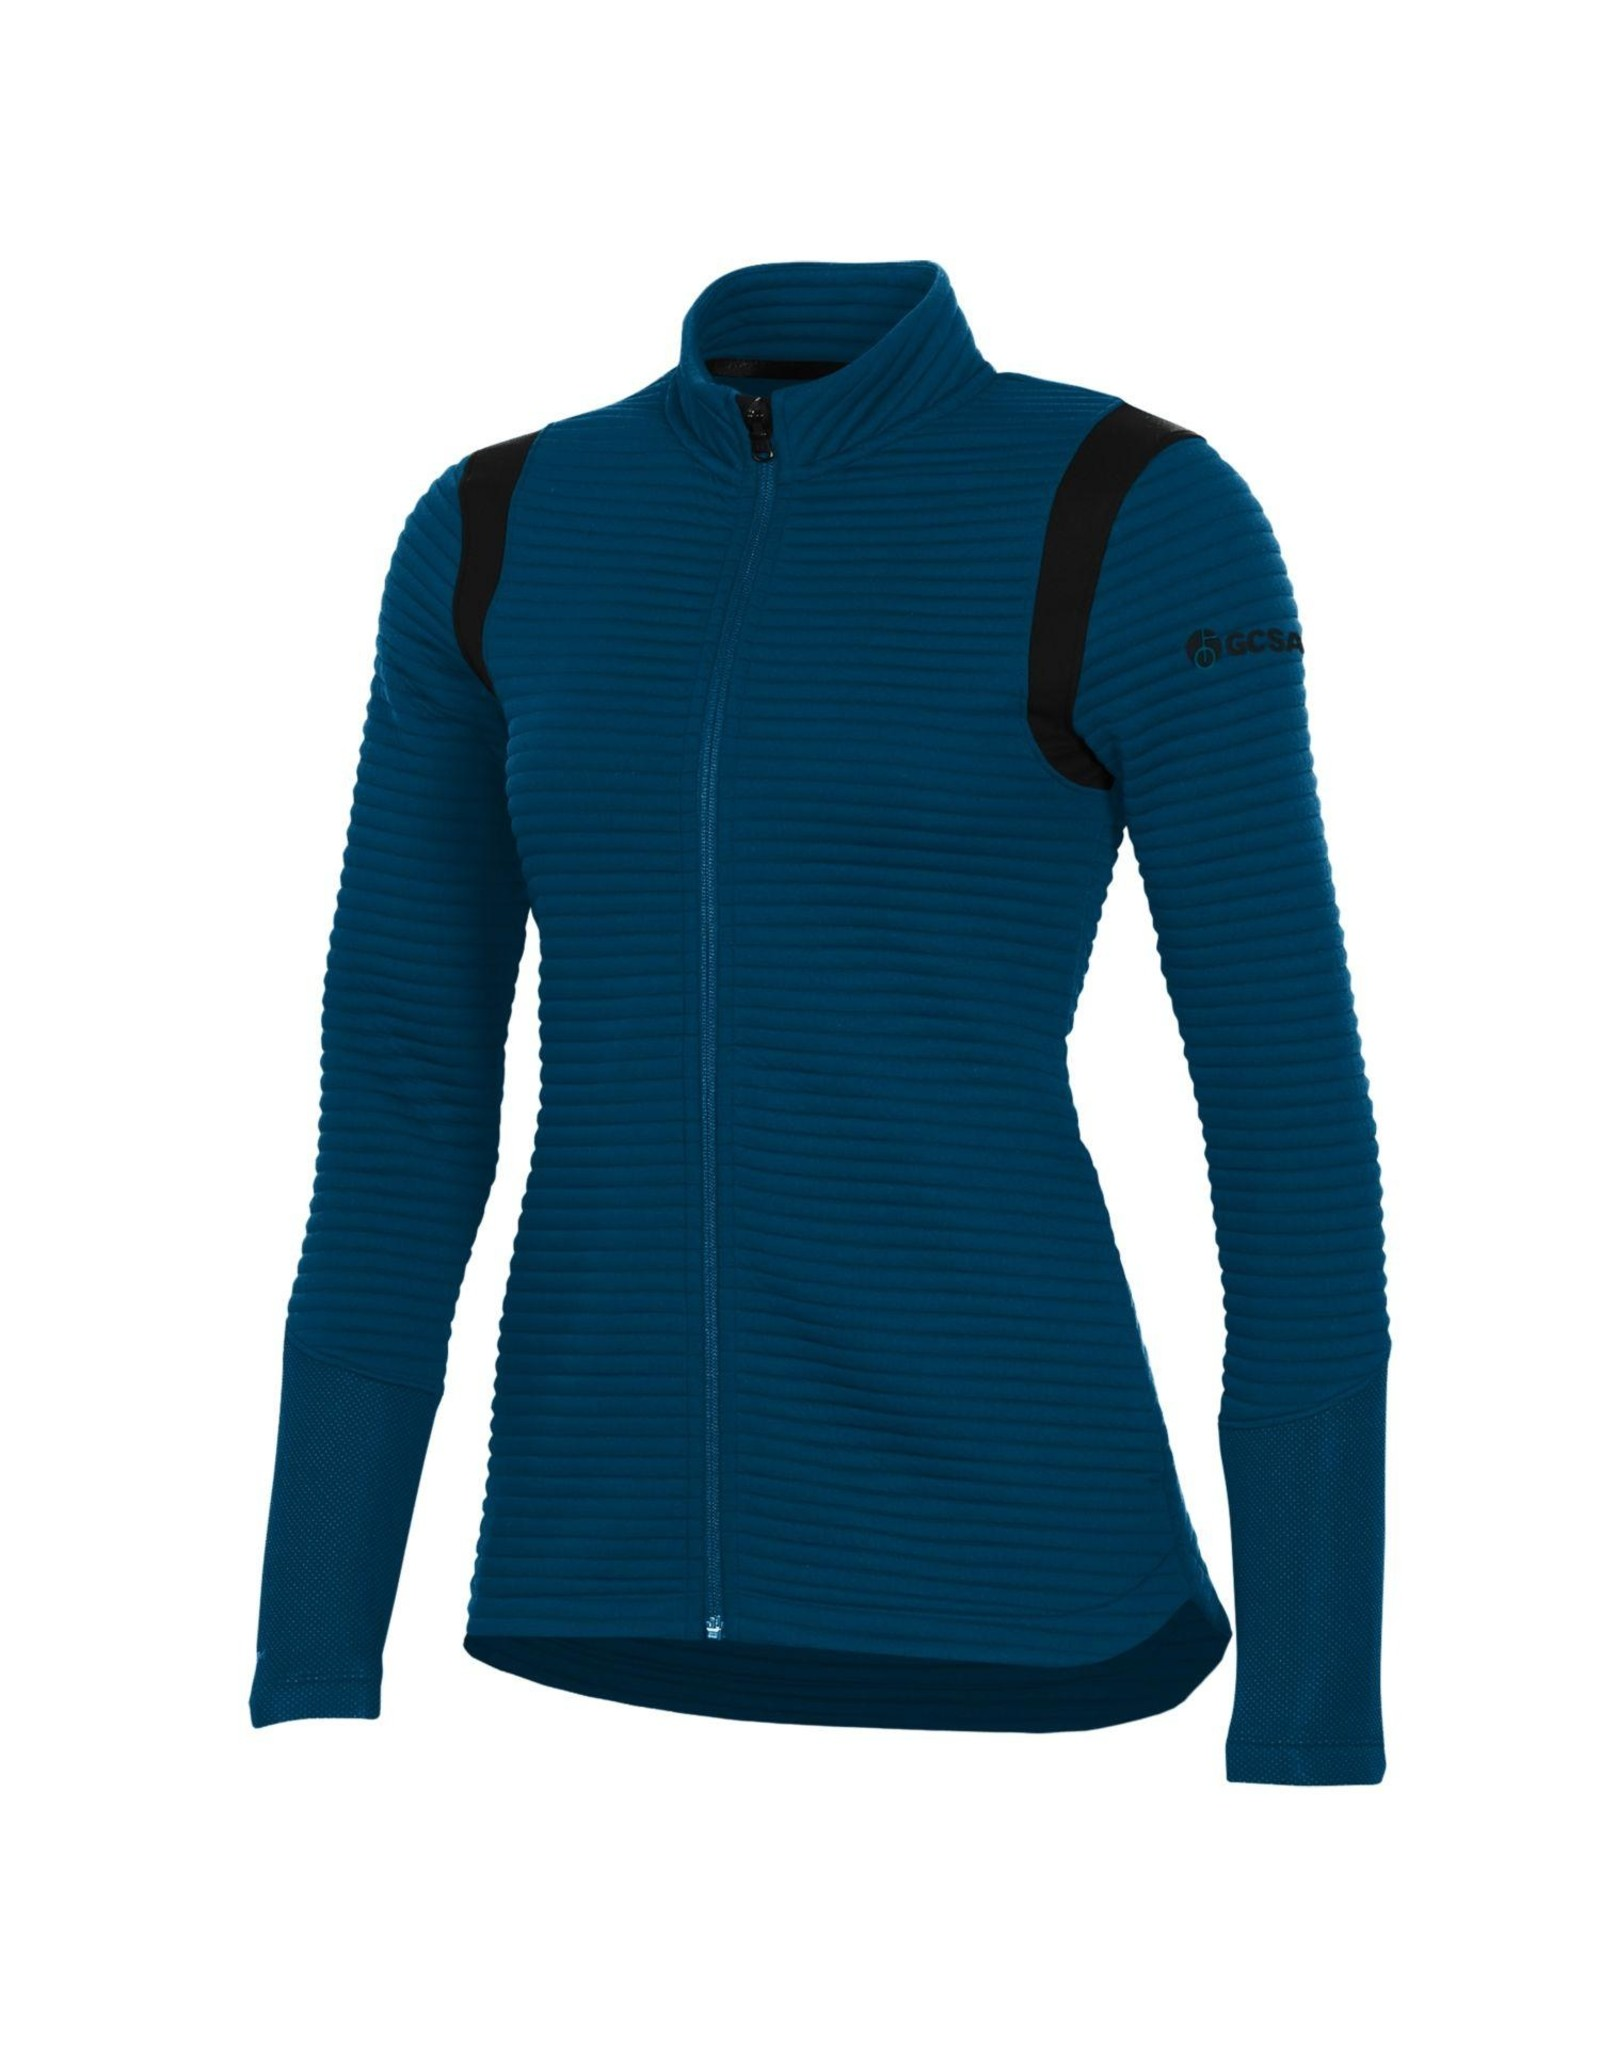 UnderArmour LADIES UA Daytona Full Zip